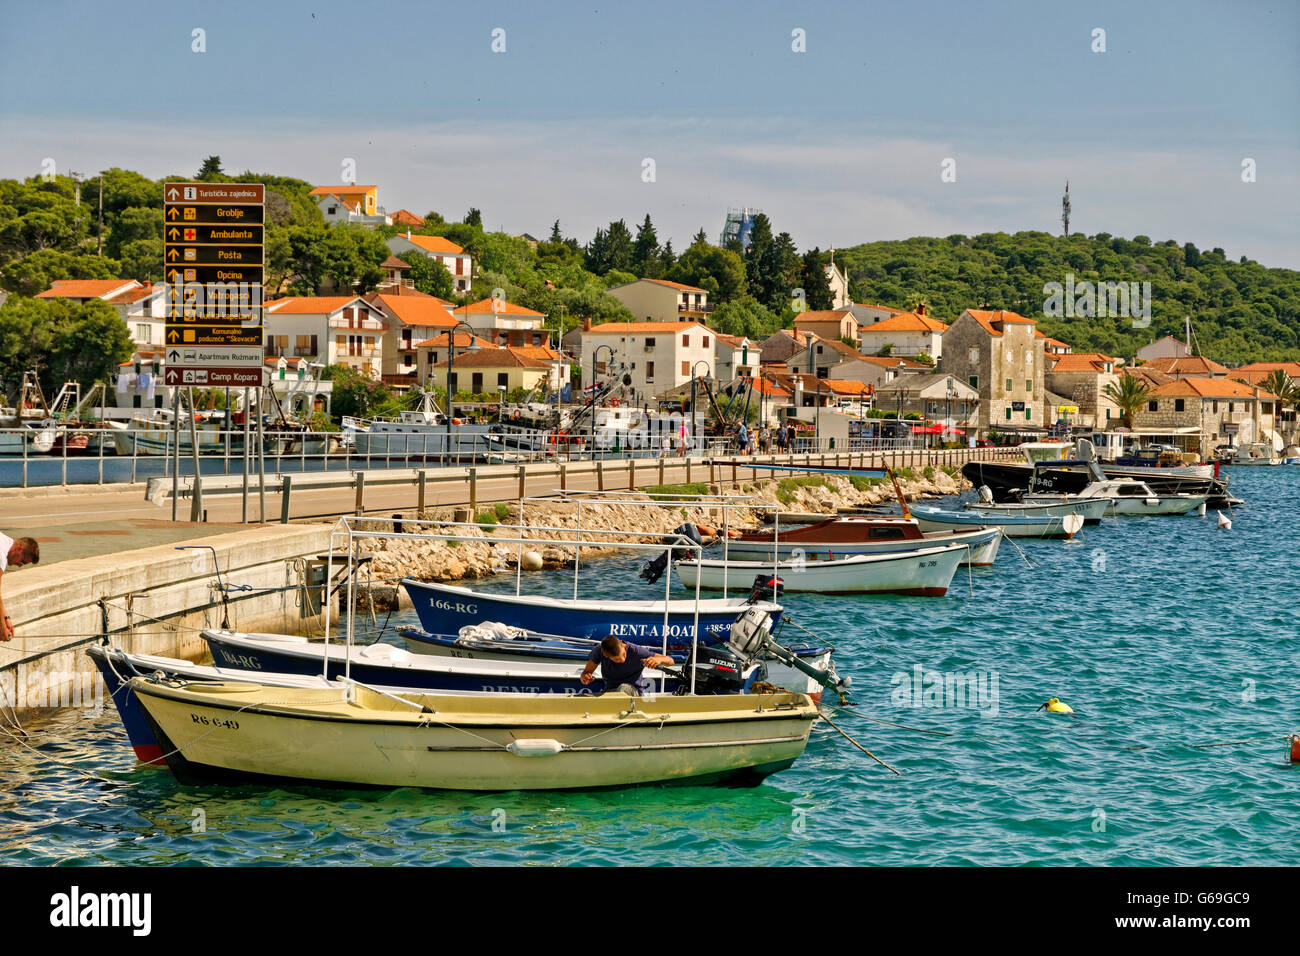 Causeway to Rogoznica island, near Split, Croatia. - Stock Image